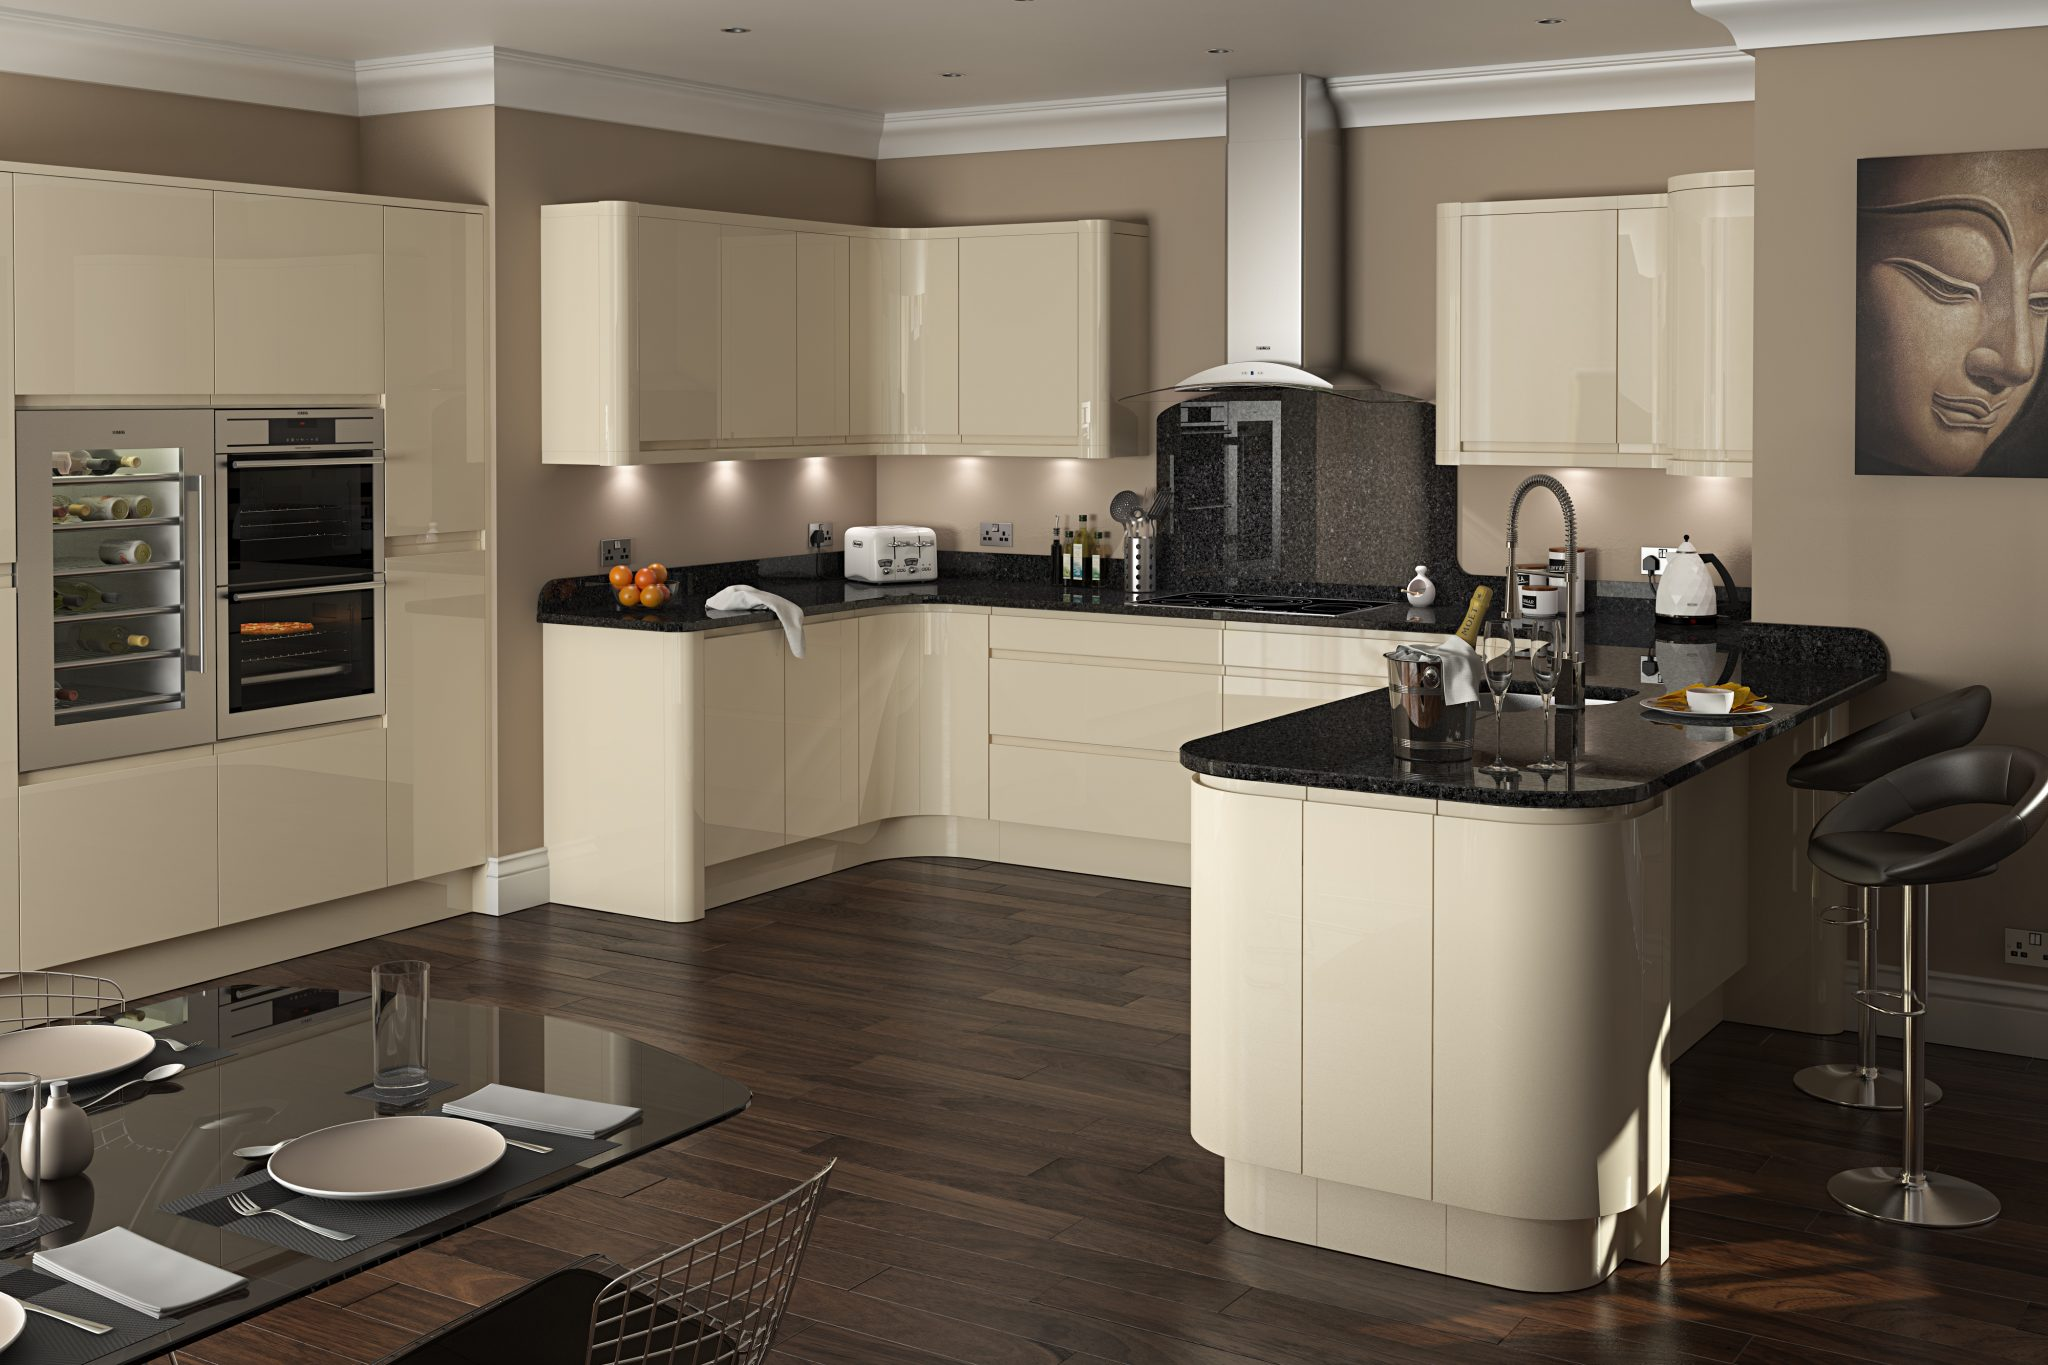 Kitchen Design Kitchens Wirral Bespoke Luxury Designs And Ideas Wirrals Designer Specialist